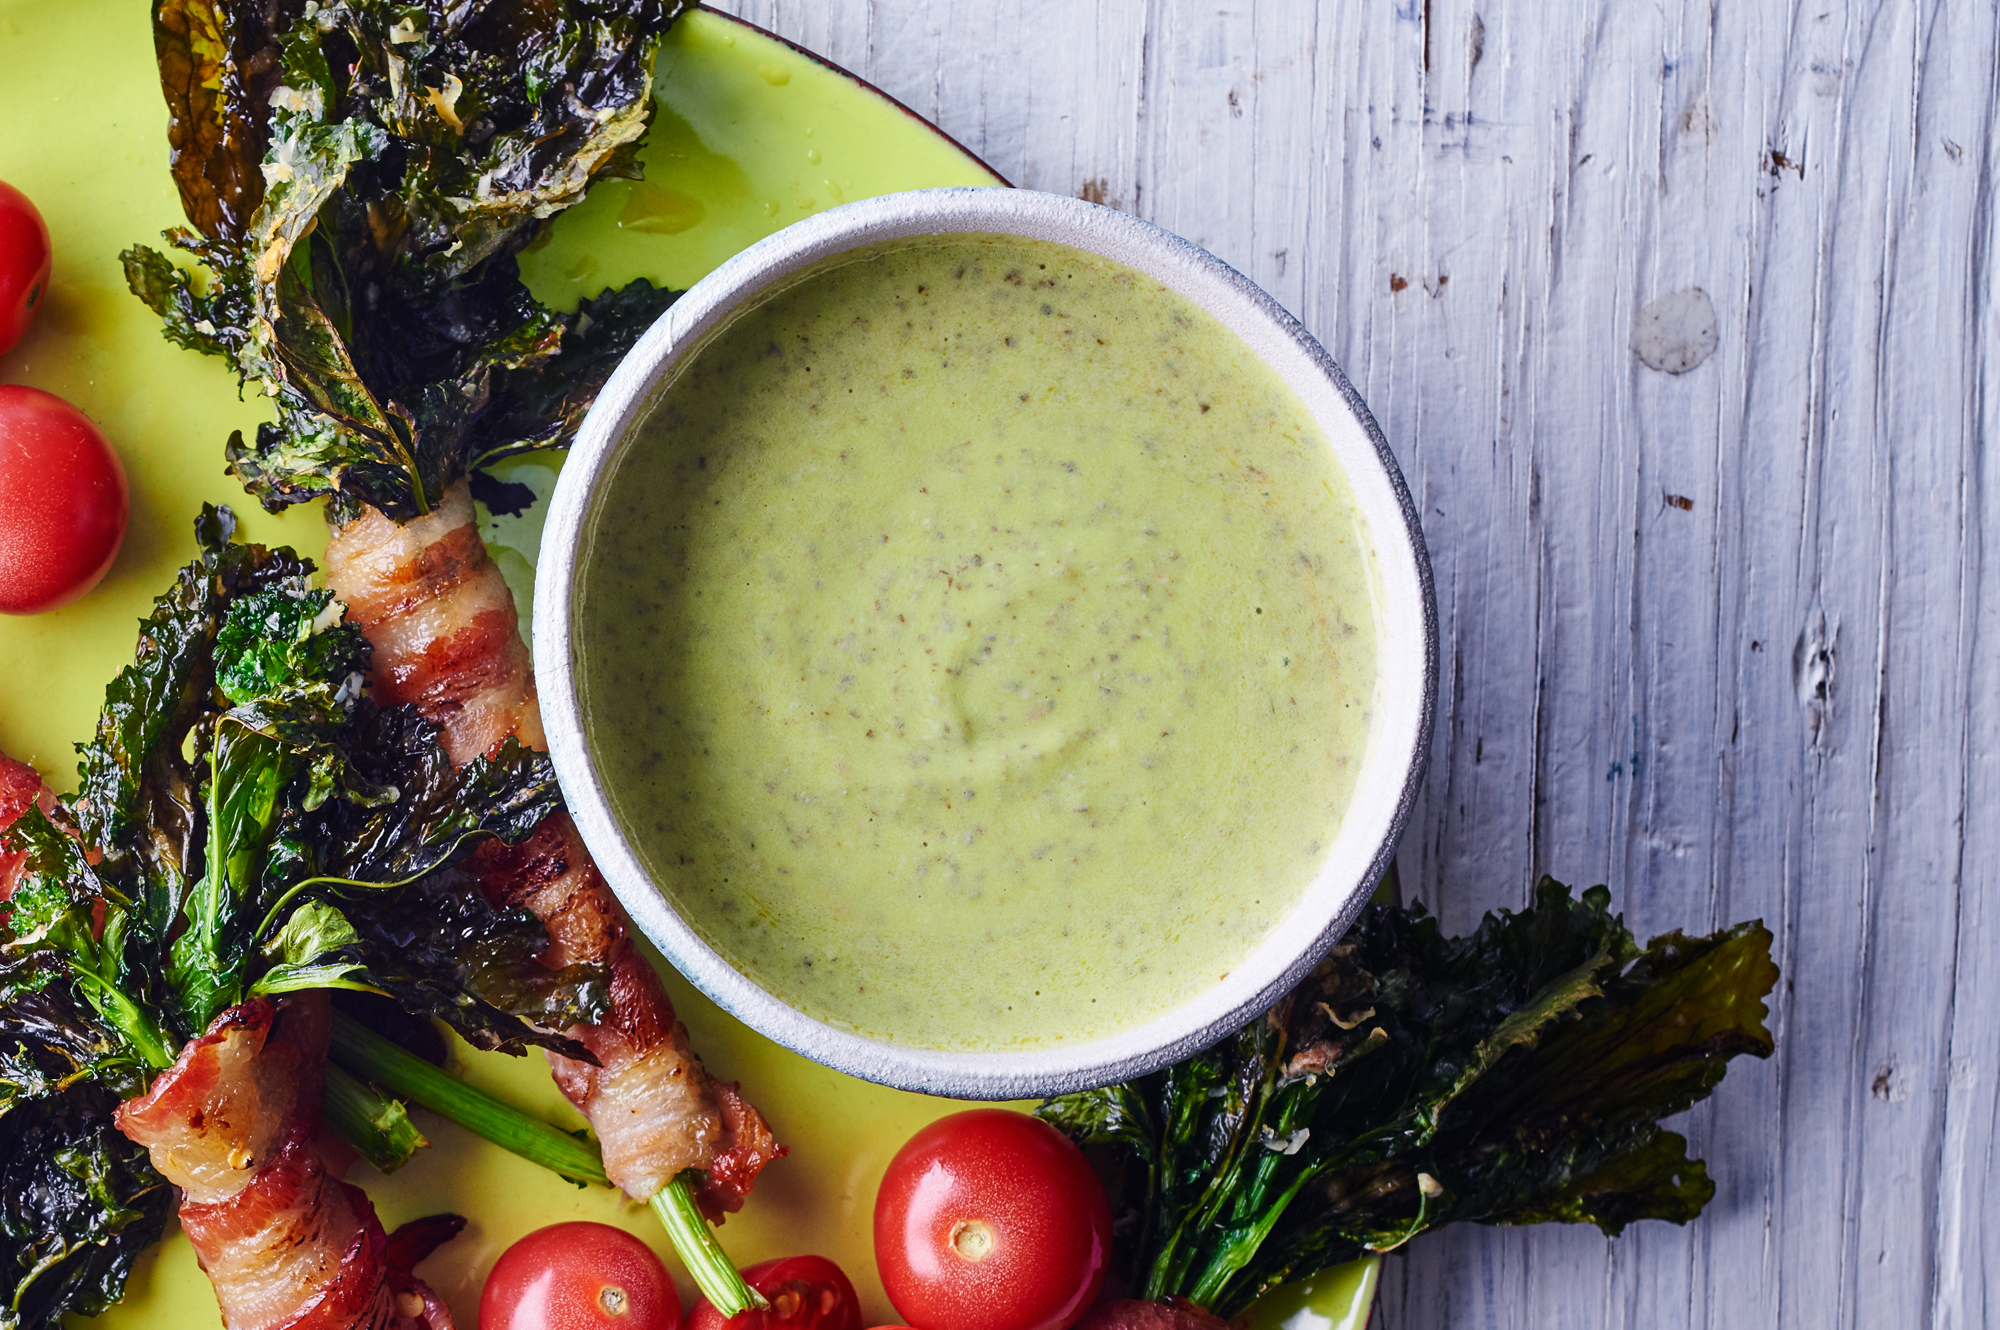 Garlic Dip Bacon Wrapped Broccoli Rabe